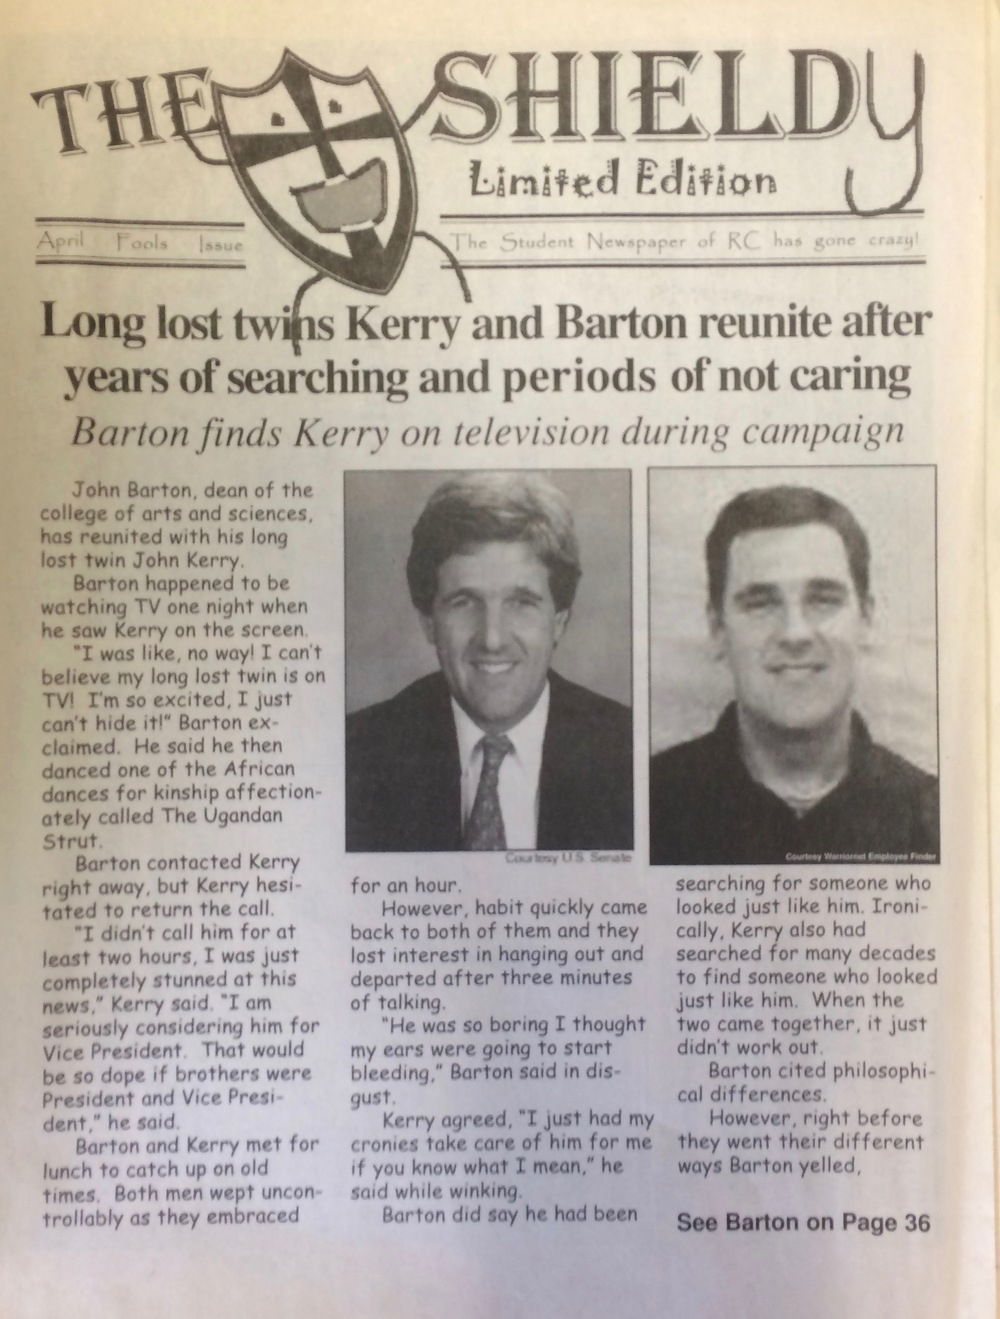 OUR FIRST APRIL FOOLS ISSUE IN 2005.